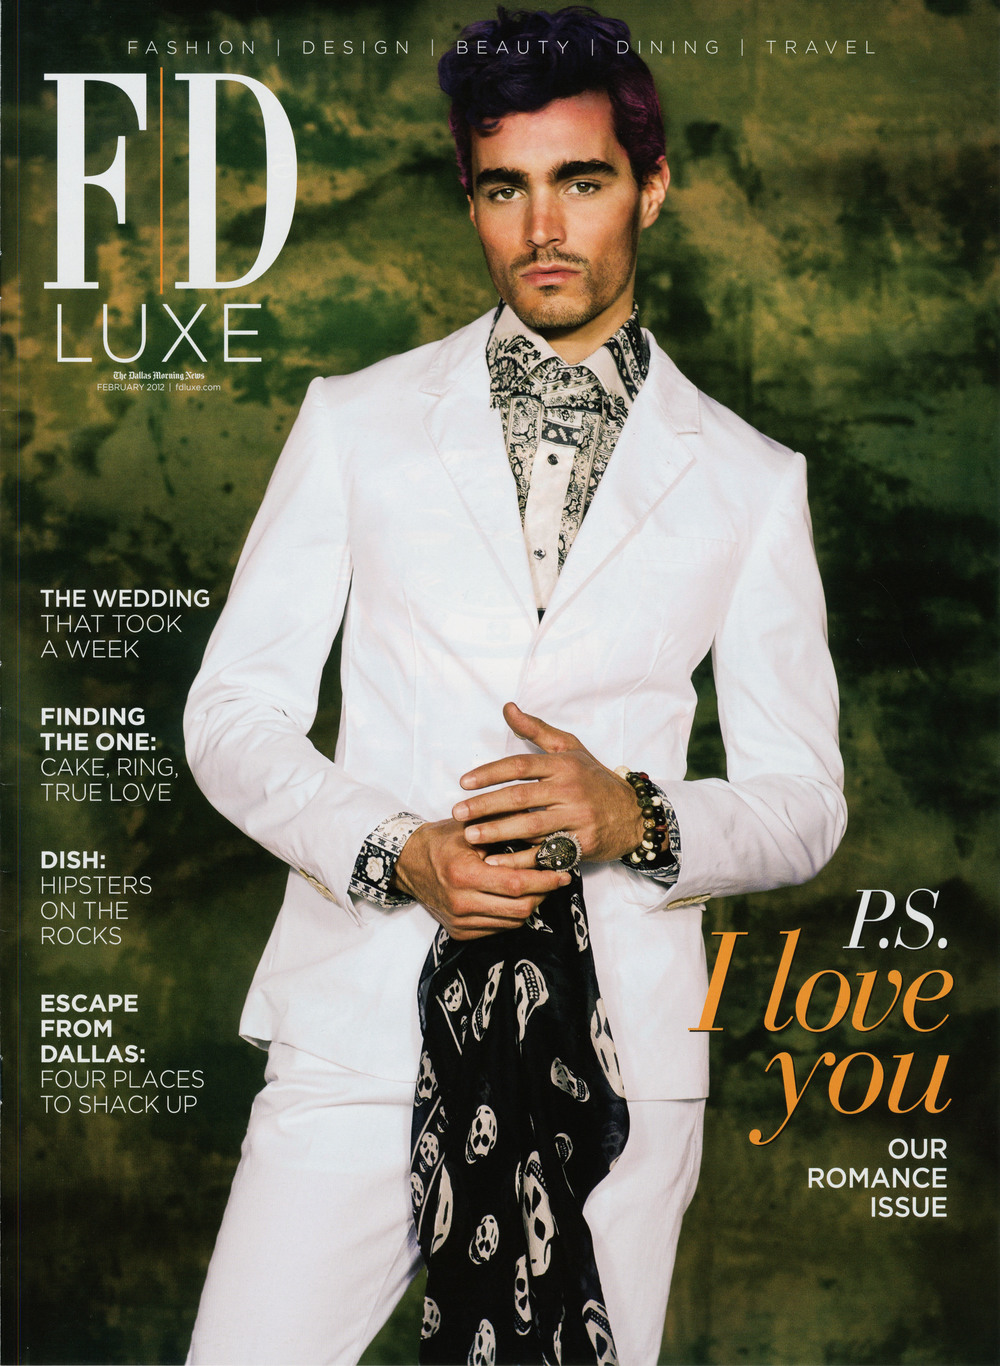 FD Luxe cover.jpg